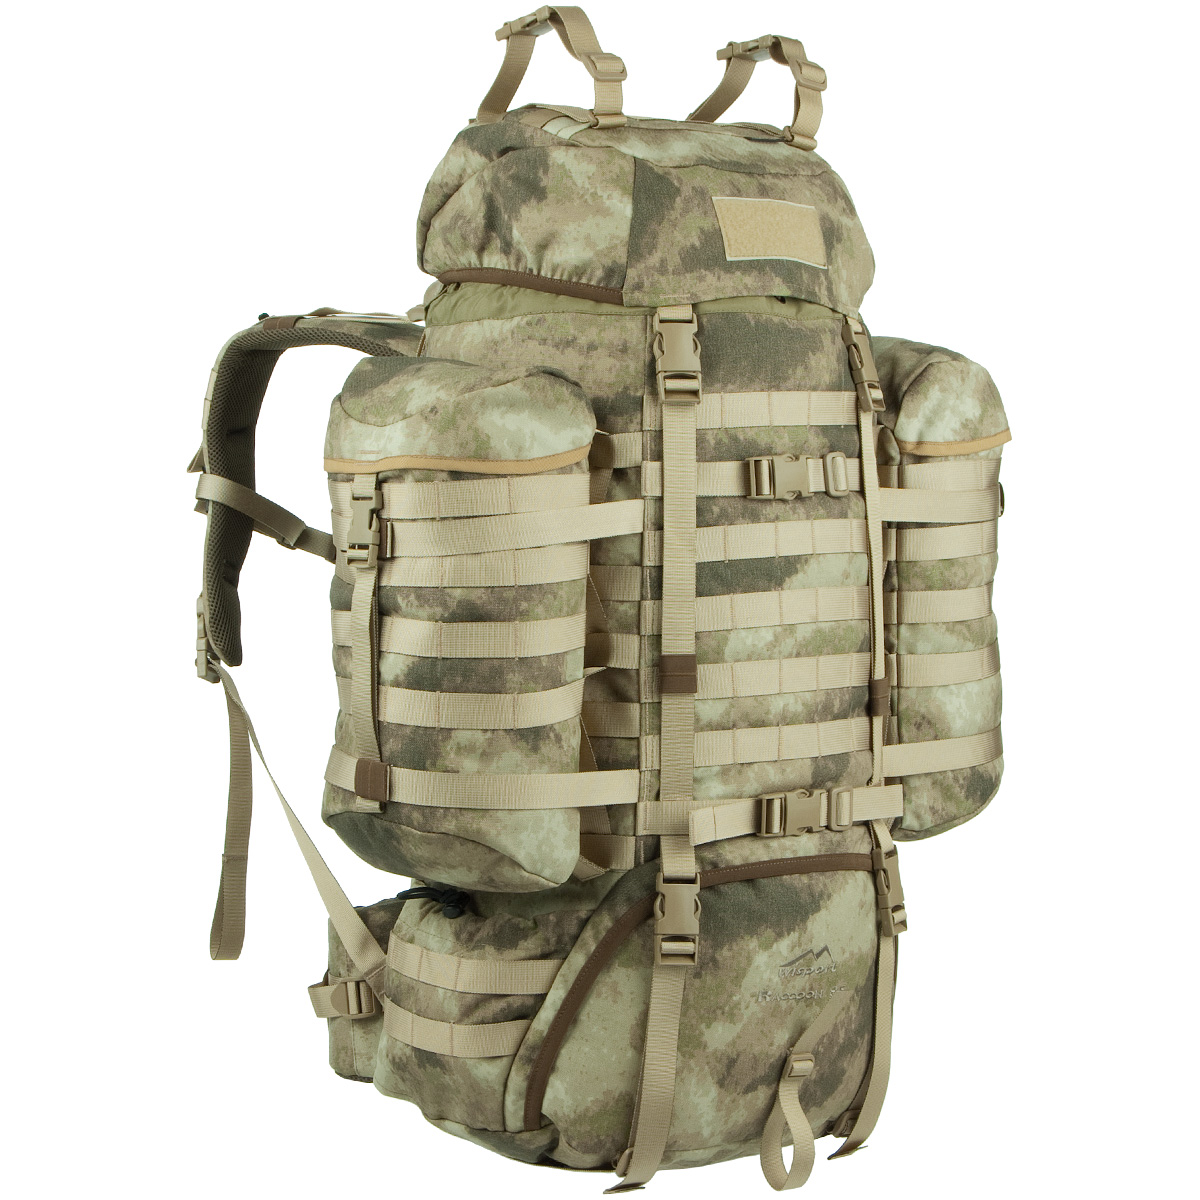 Wisport 85l Raccoon Backpack Tactical Hiking Hydration